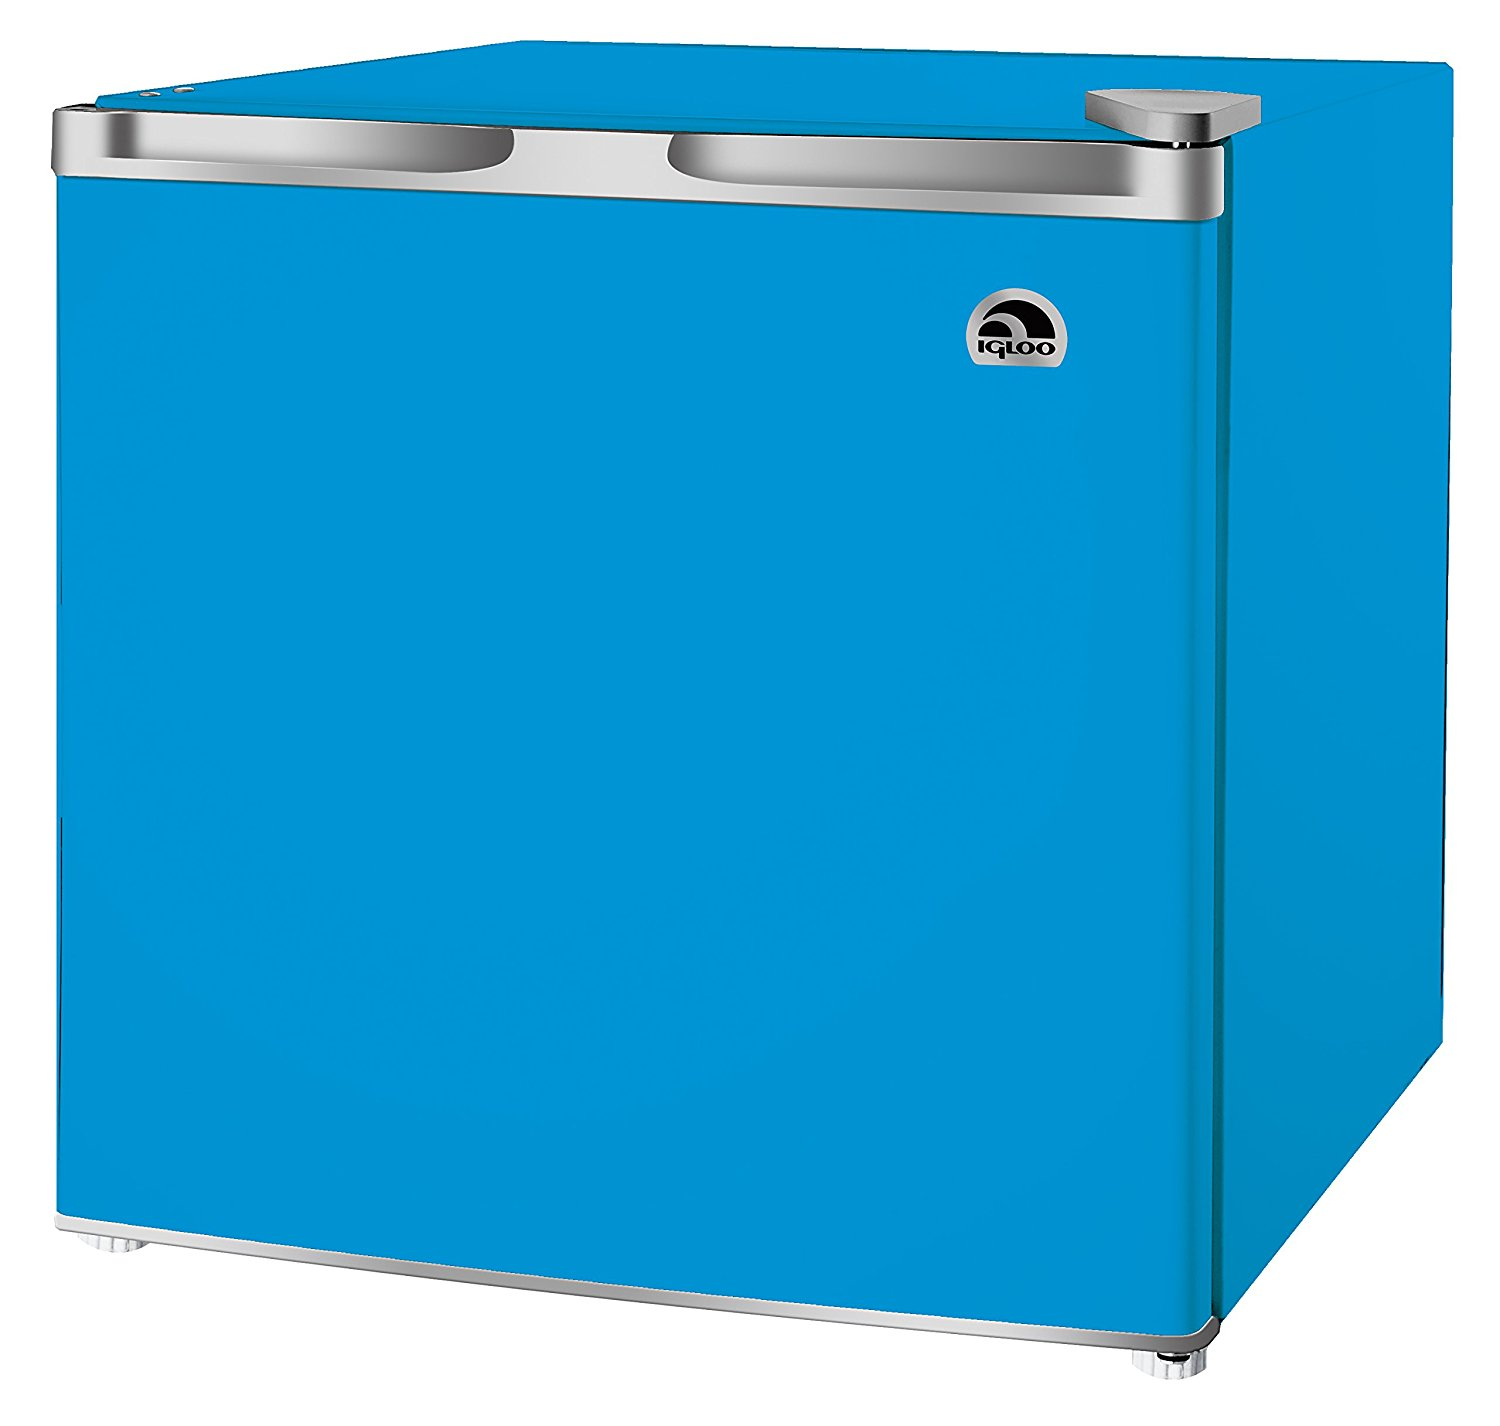 RCA 1.6-1.7 Cubic Foot Fridge, Blue